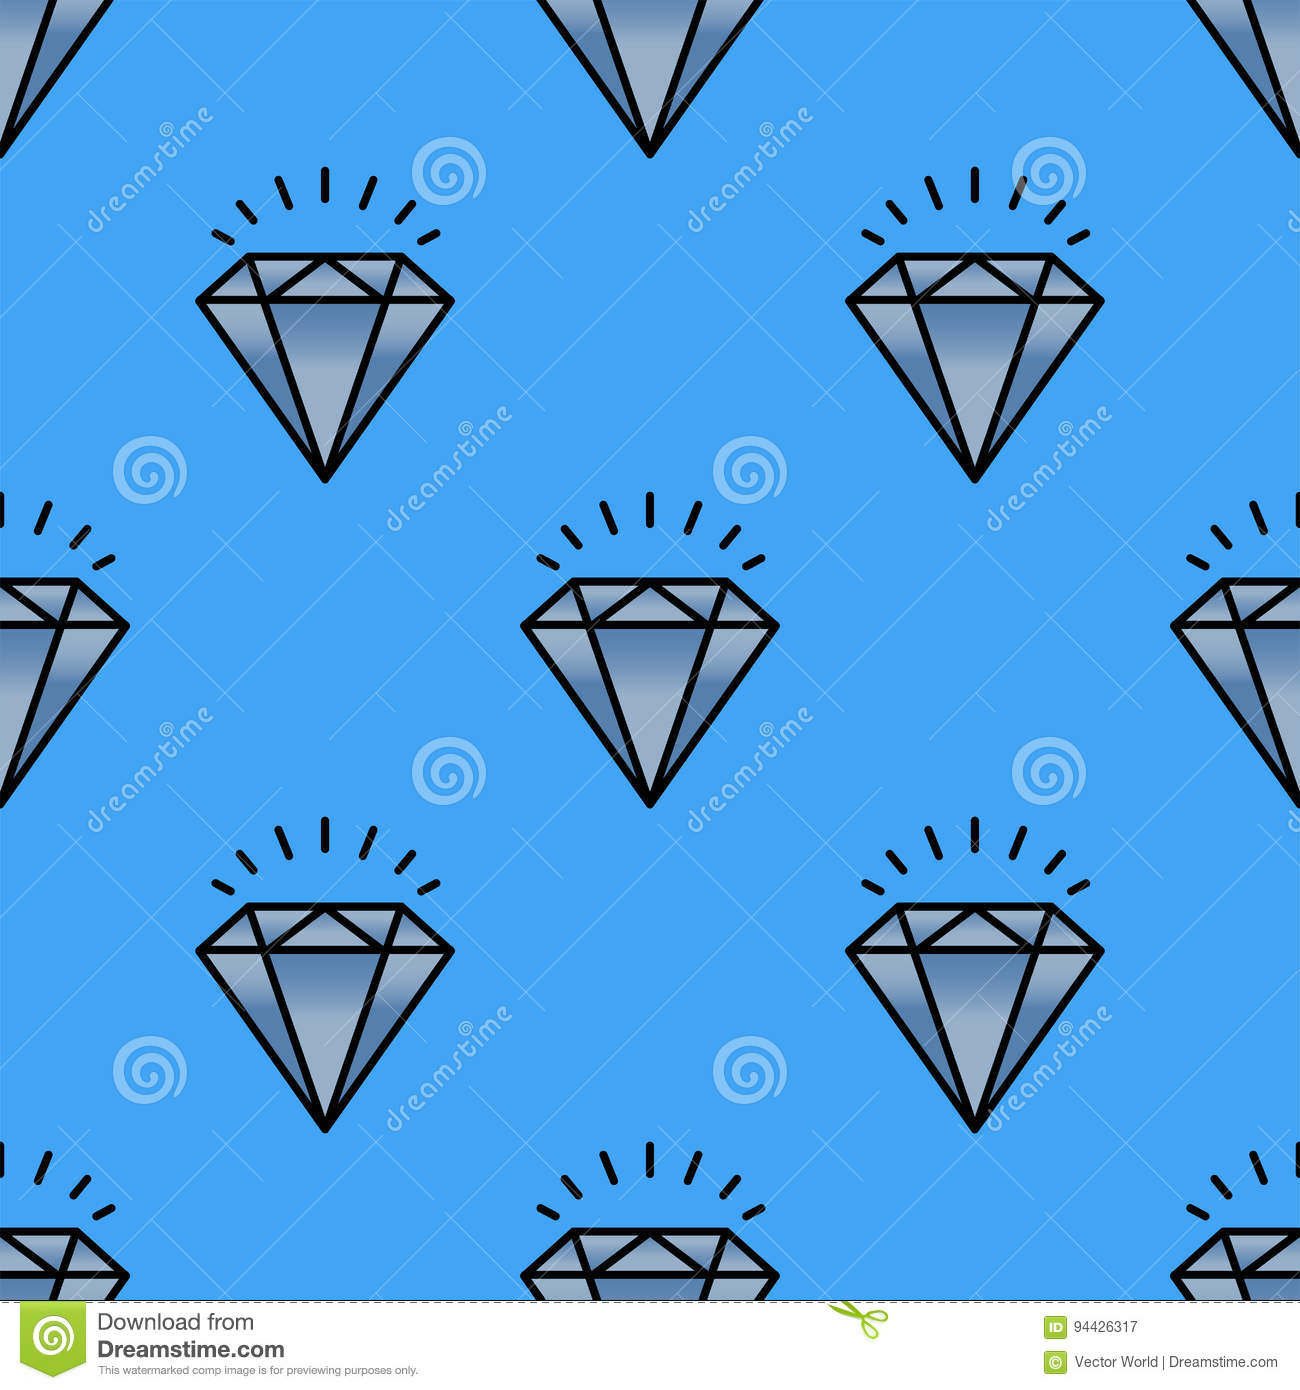 Traditional brilliant jewellery seamless pattern diamond luxury fine minute precious gold jewelery vector illustration